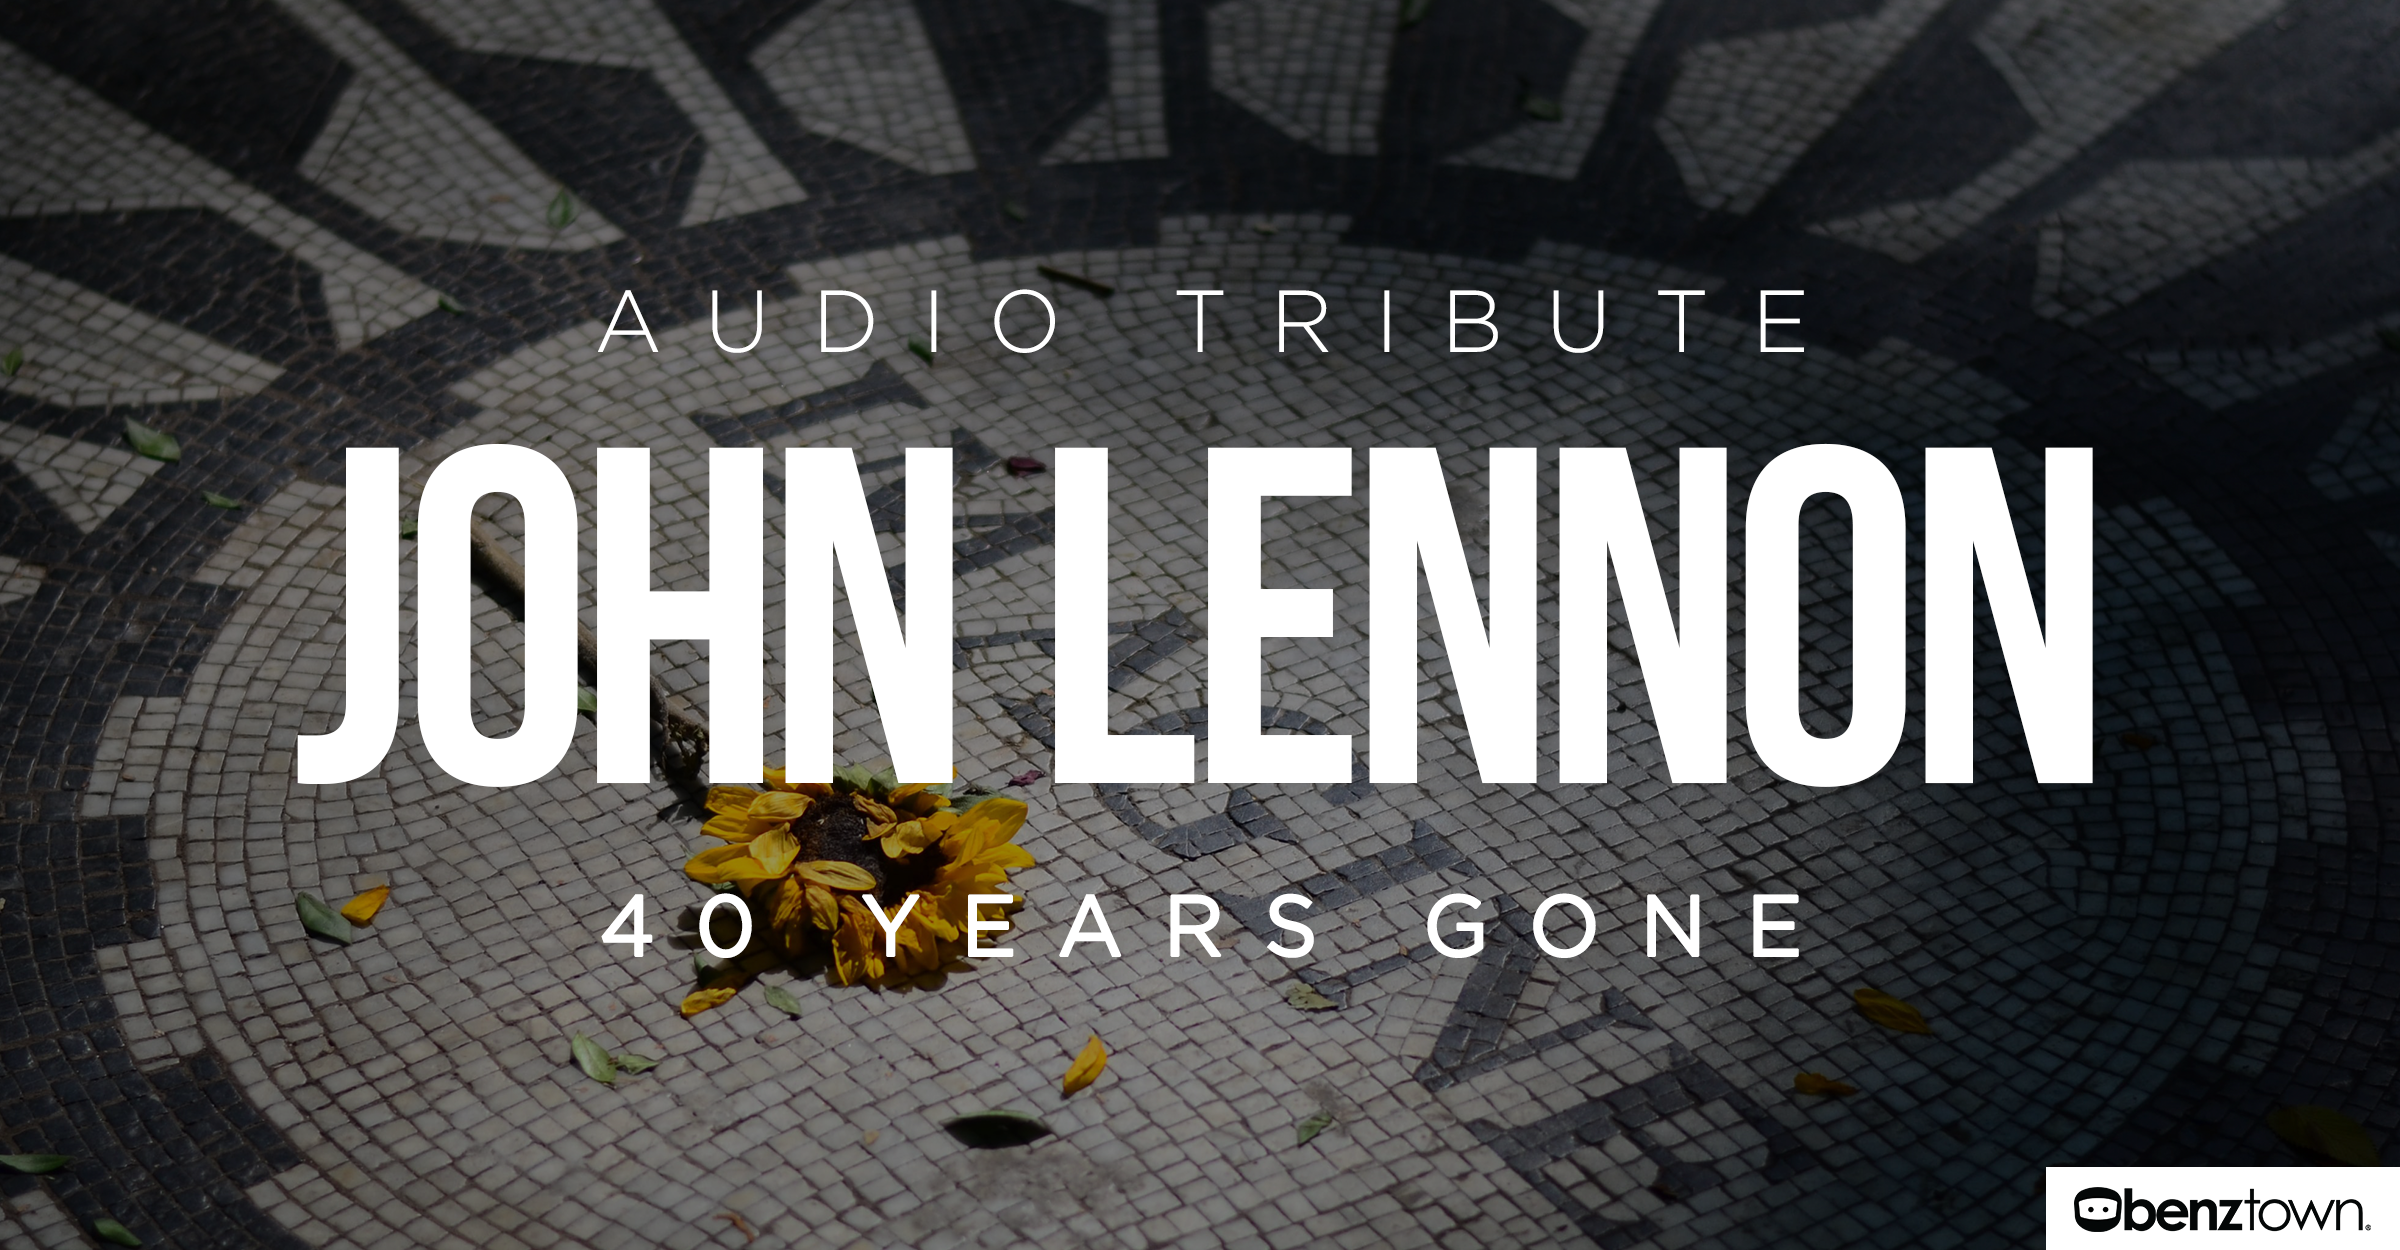 JohnLennon_Tribute